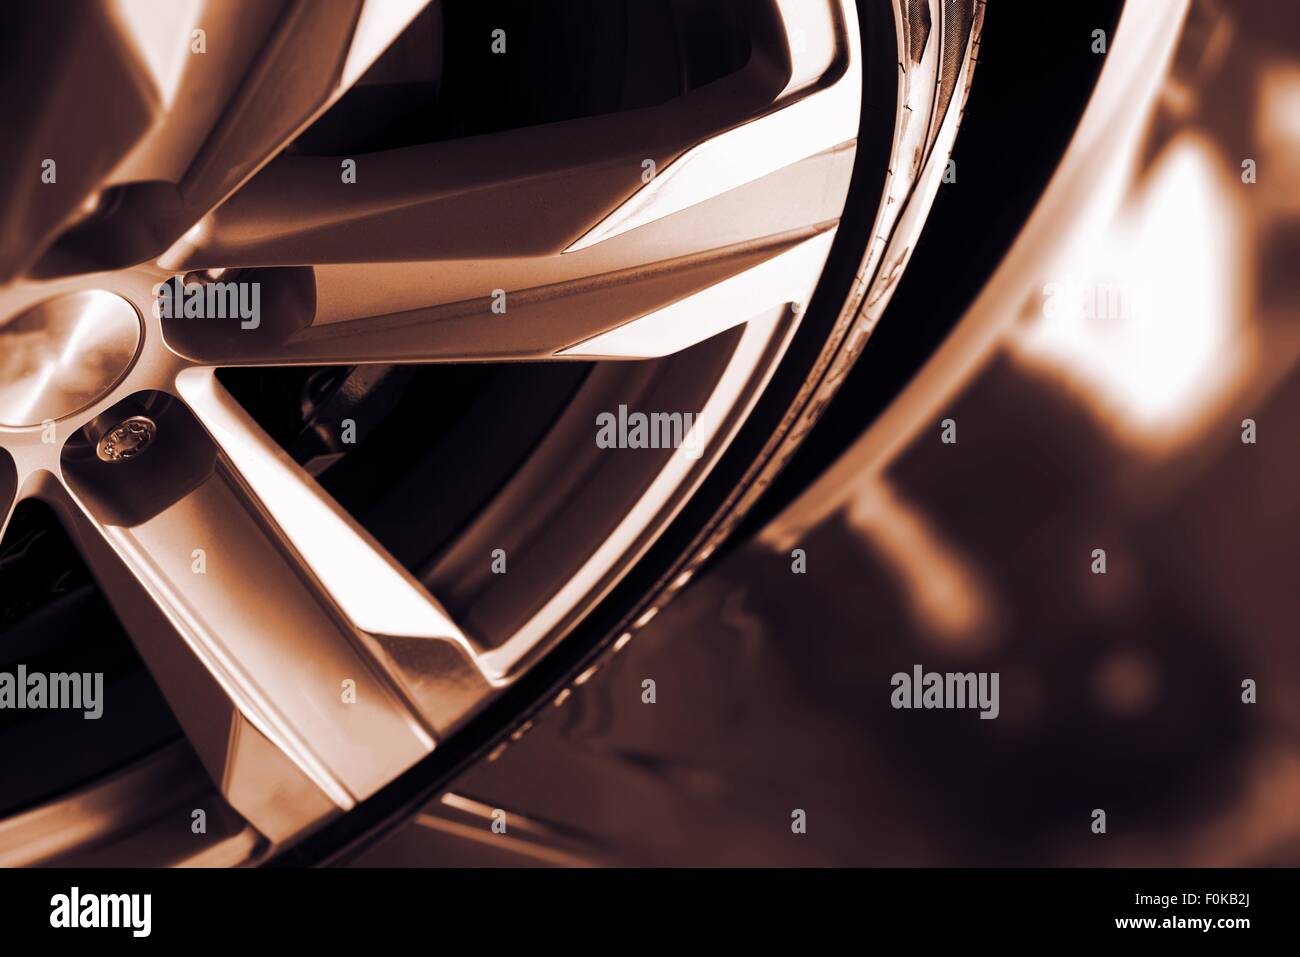 Alloy Car Wheel Closeup. Modern Car Wheel. - Stock Image